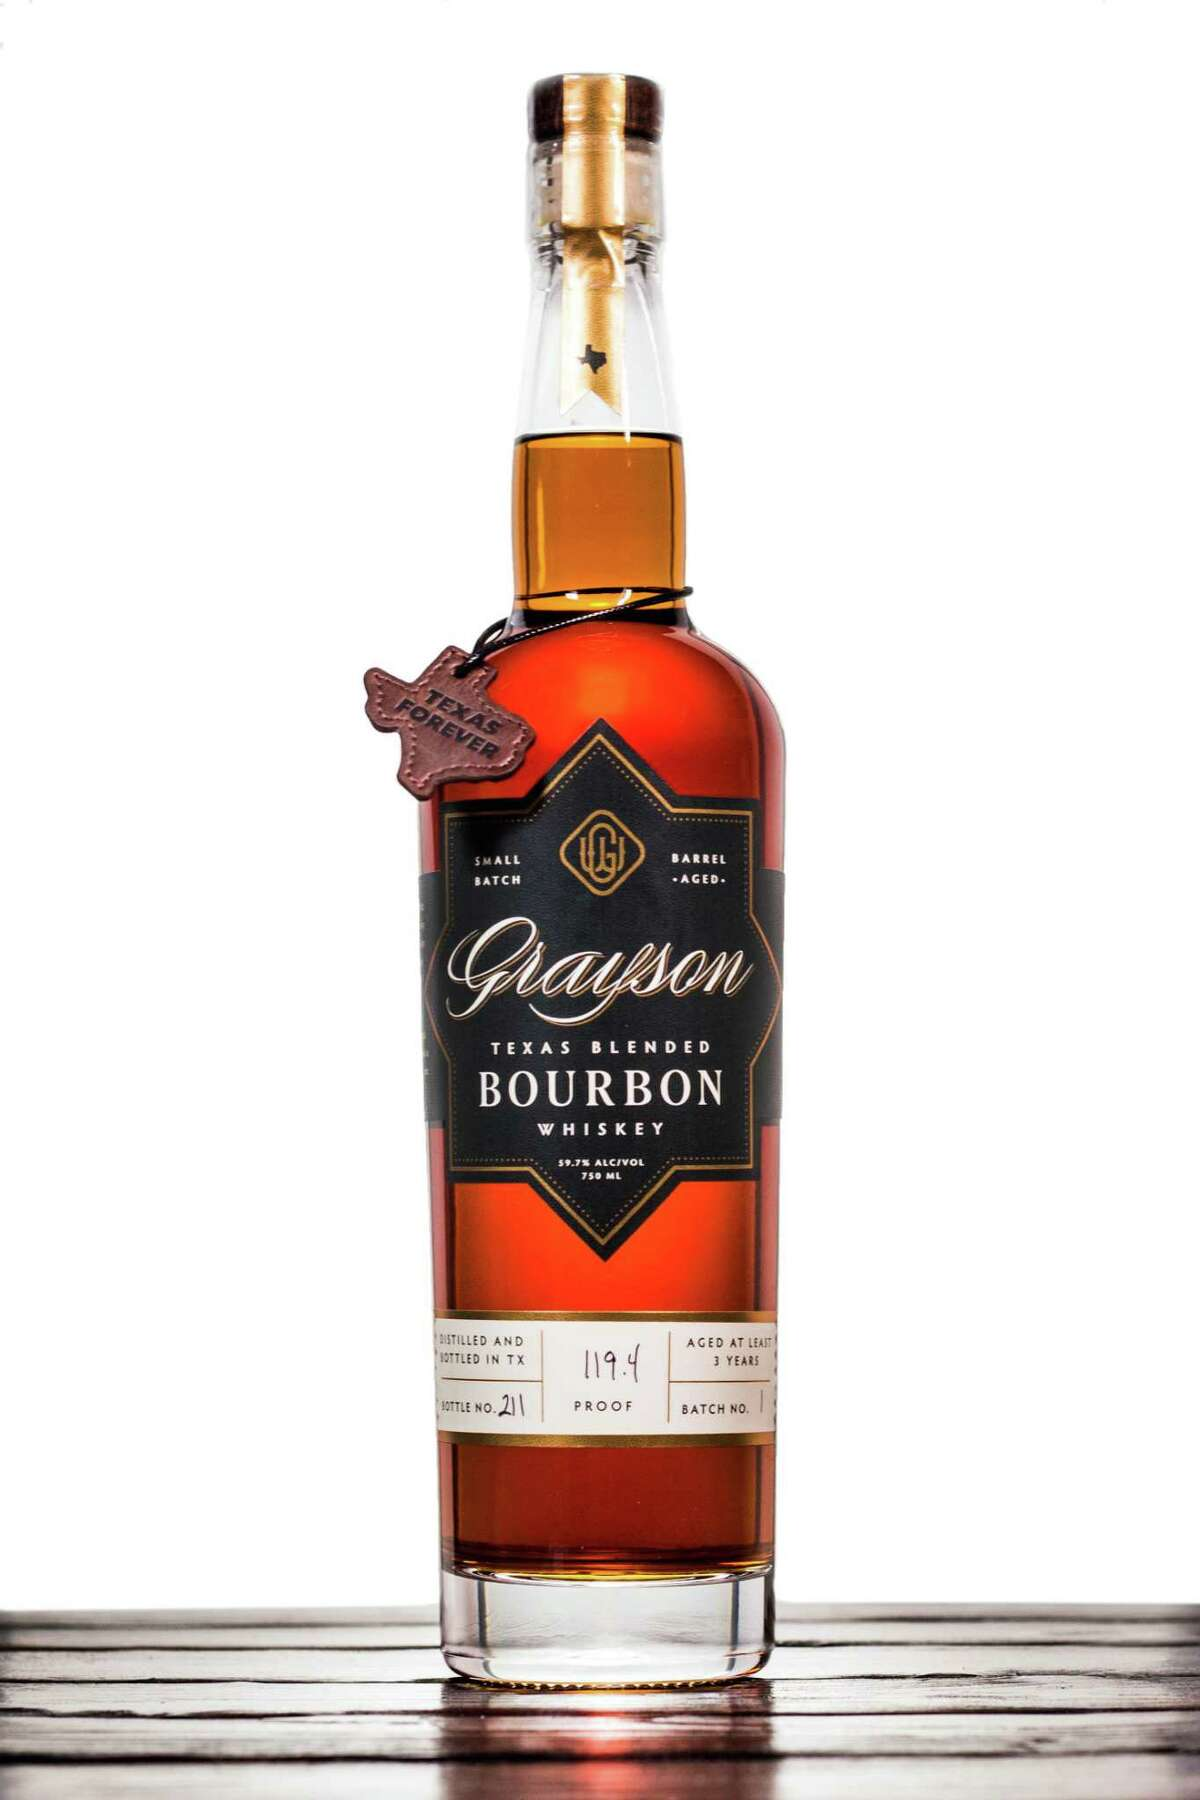 Grayson Texas Blended Bourbon is made with carefully chosen single barrels from Ironroot Republic Distilling, Balcones Distilling and Five Points Distilling - all proud Texas whiskey producers.